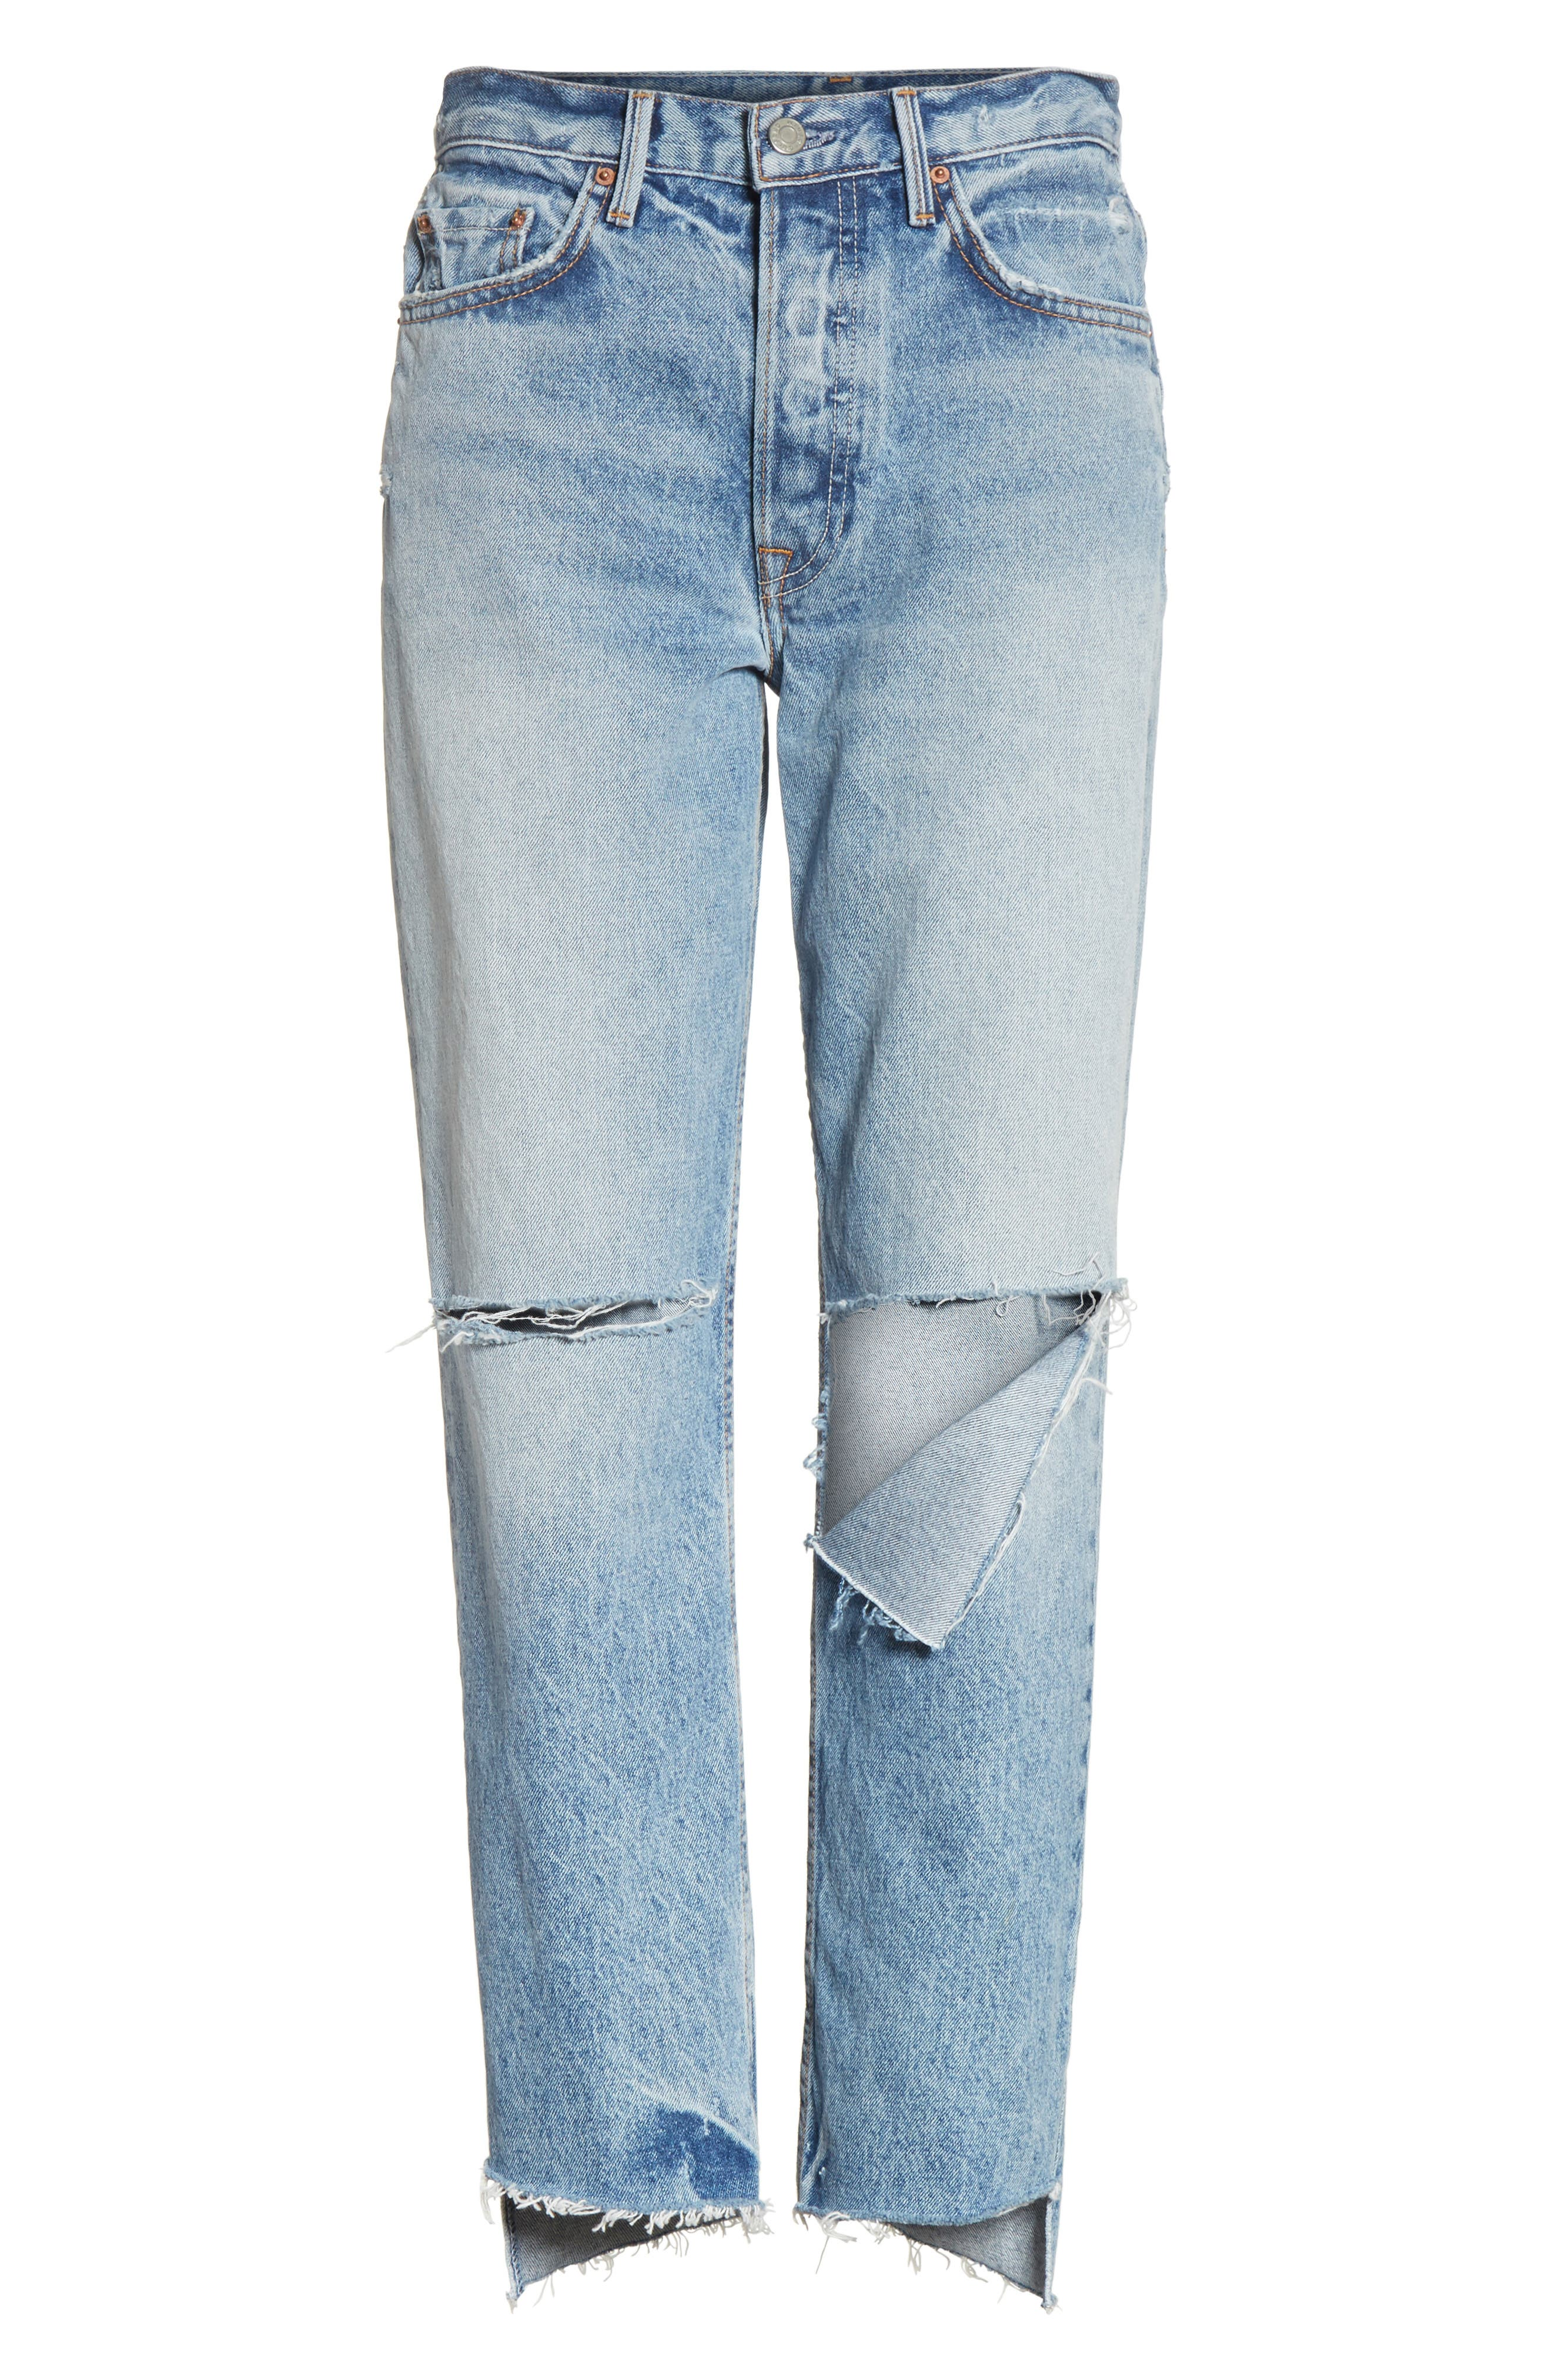 Helena Ripped Rigid High Waist Straight Jeans,                             Alternate thumbnail 6, color,                             470